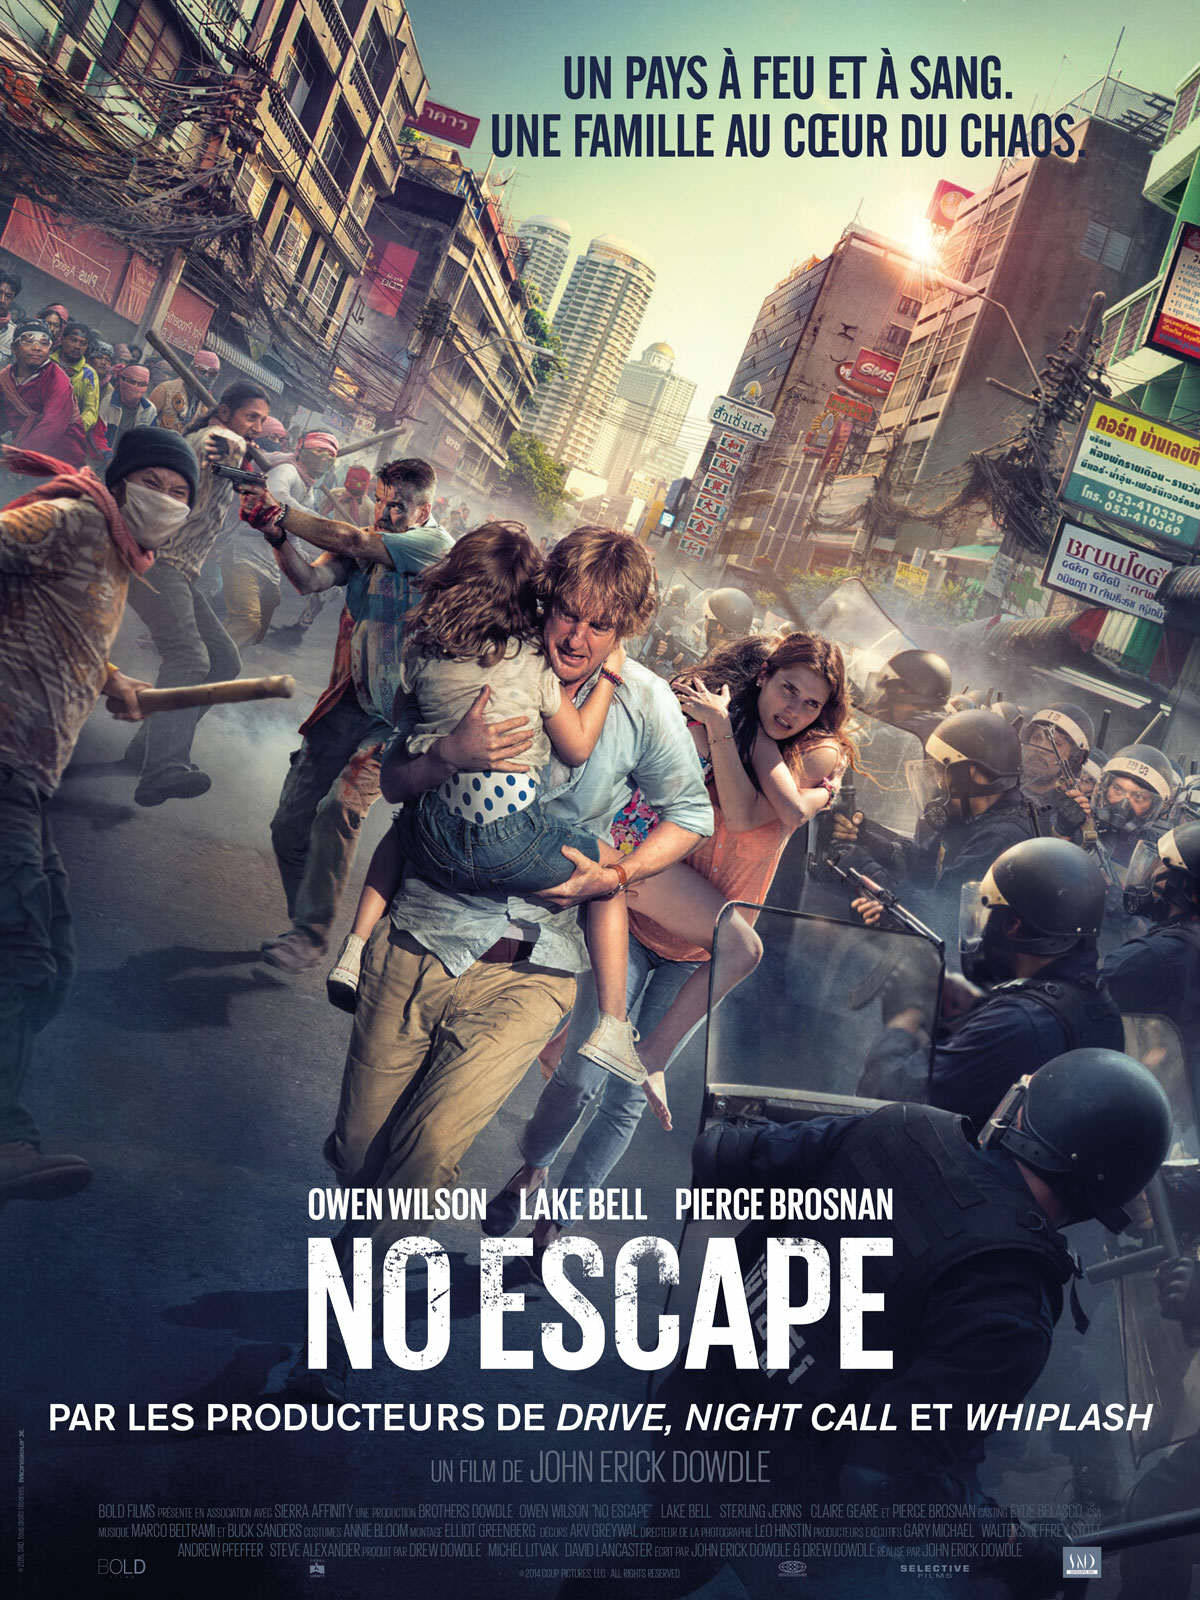 No Escape - Owen Wilson